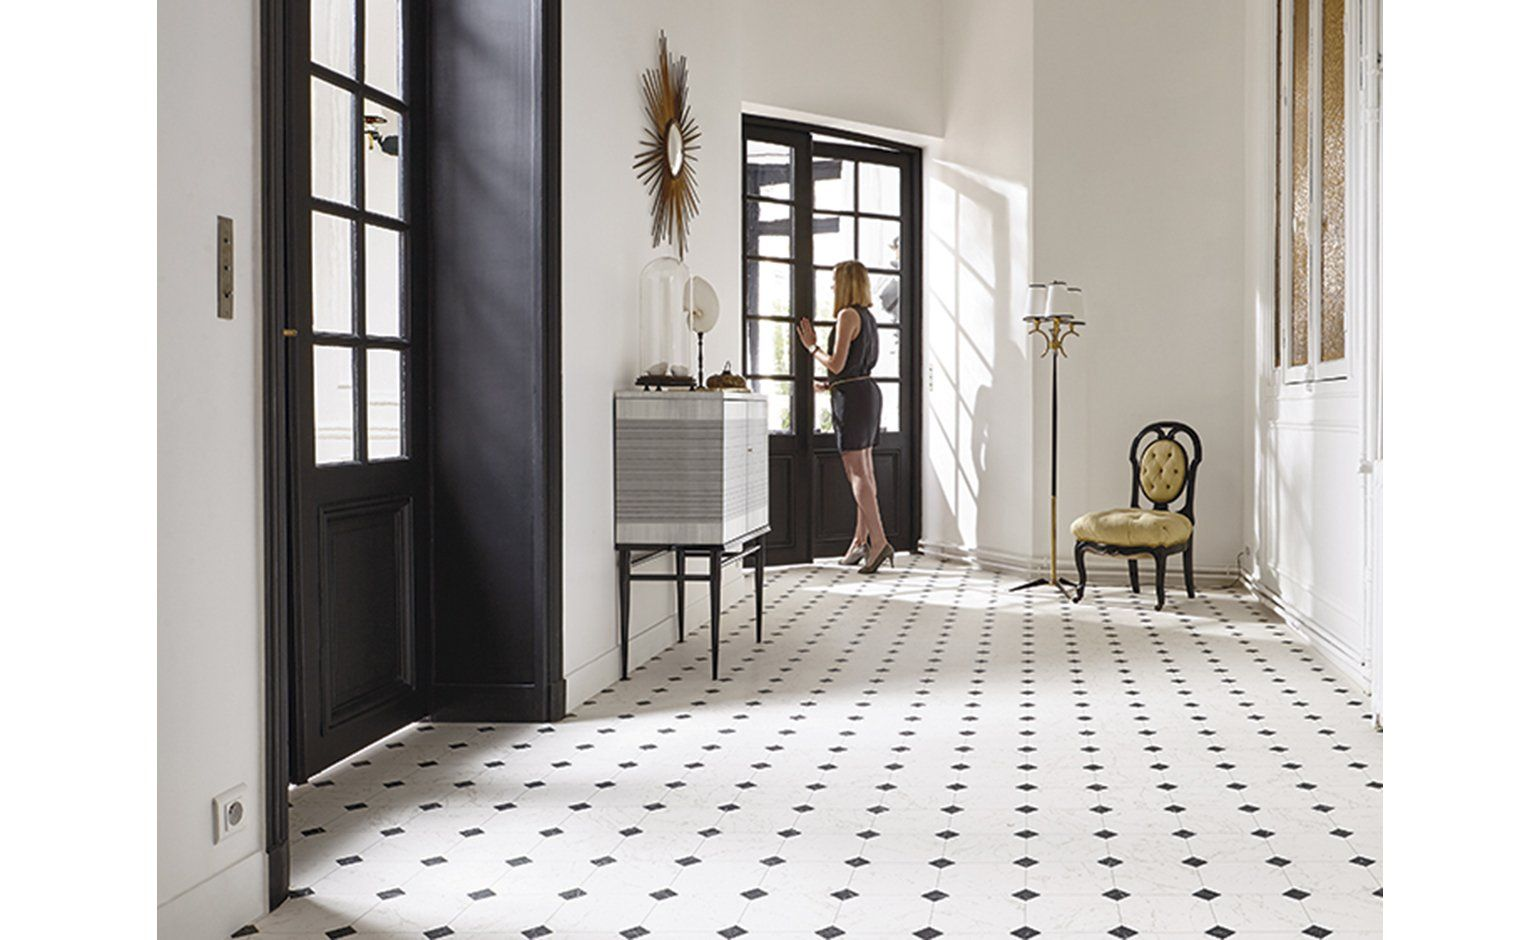 Gerflor Saint Maclou Gerflor Virtuo Clic Saint Maclou Top Awesome Sol Stratifi